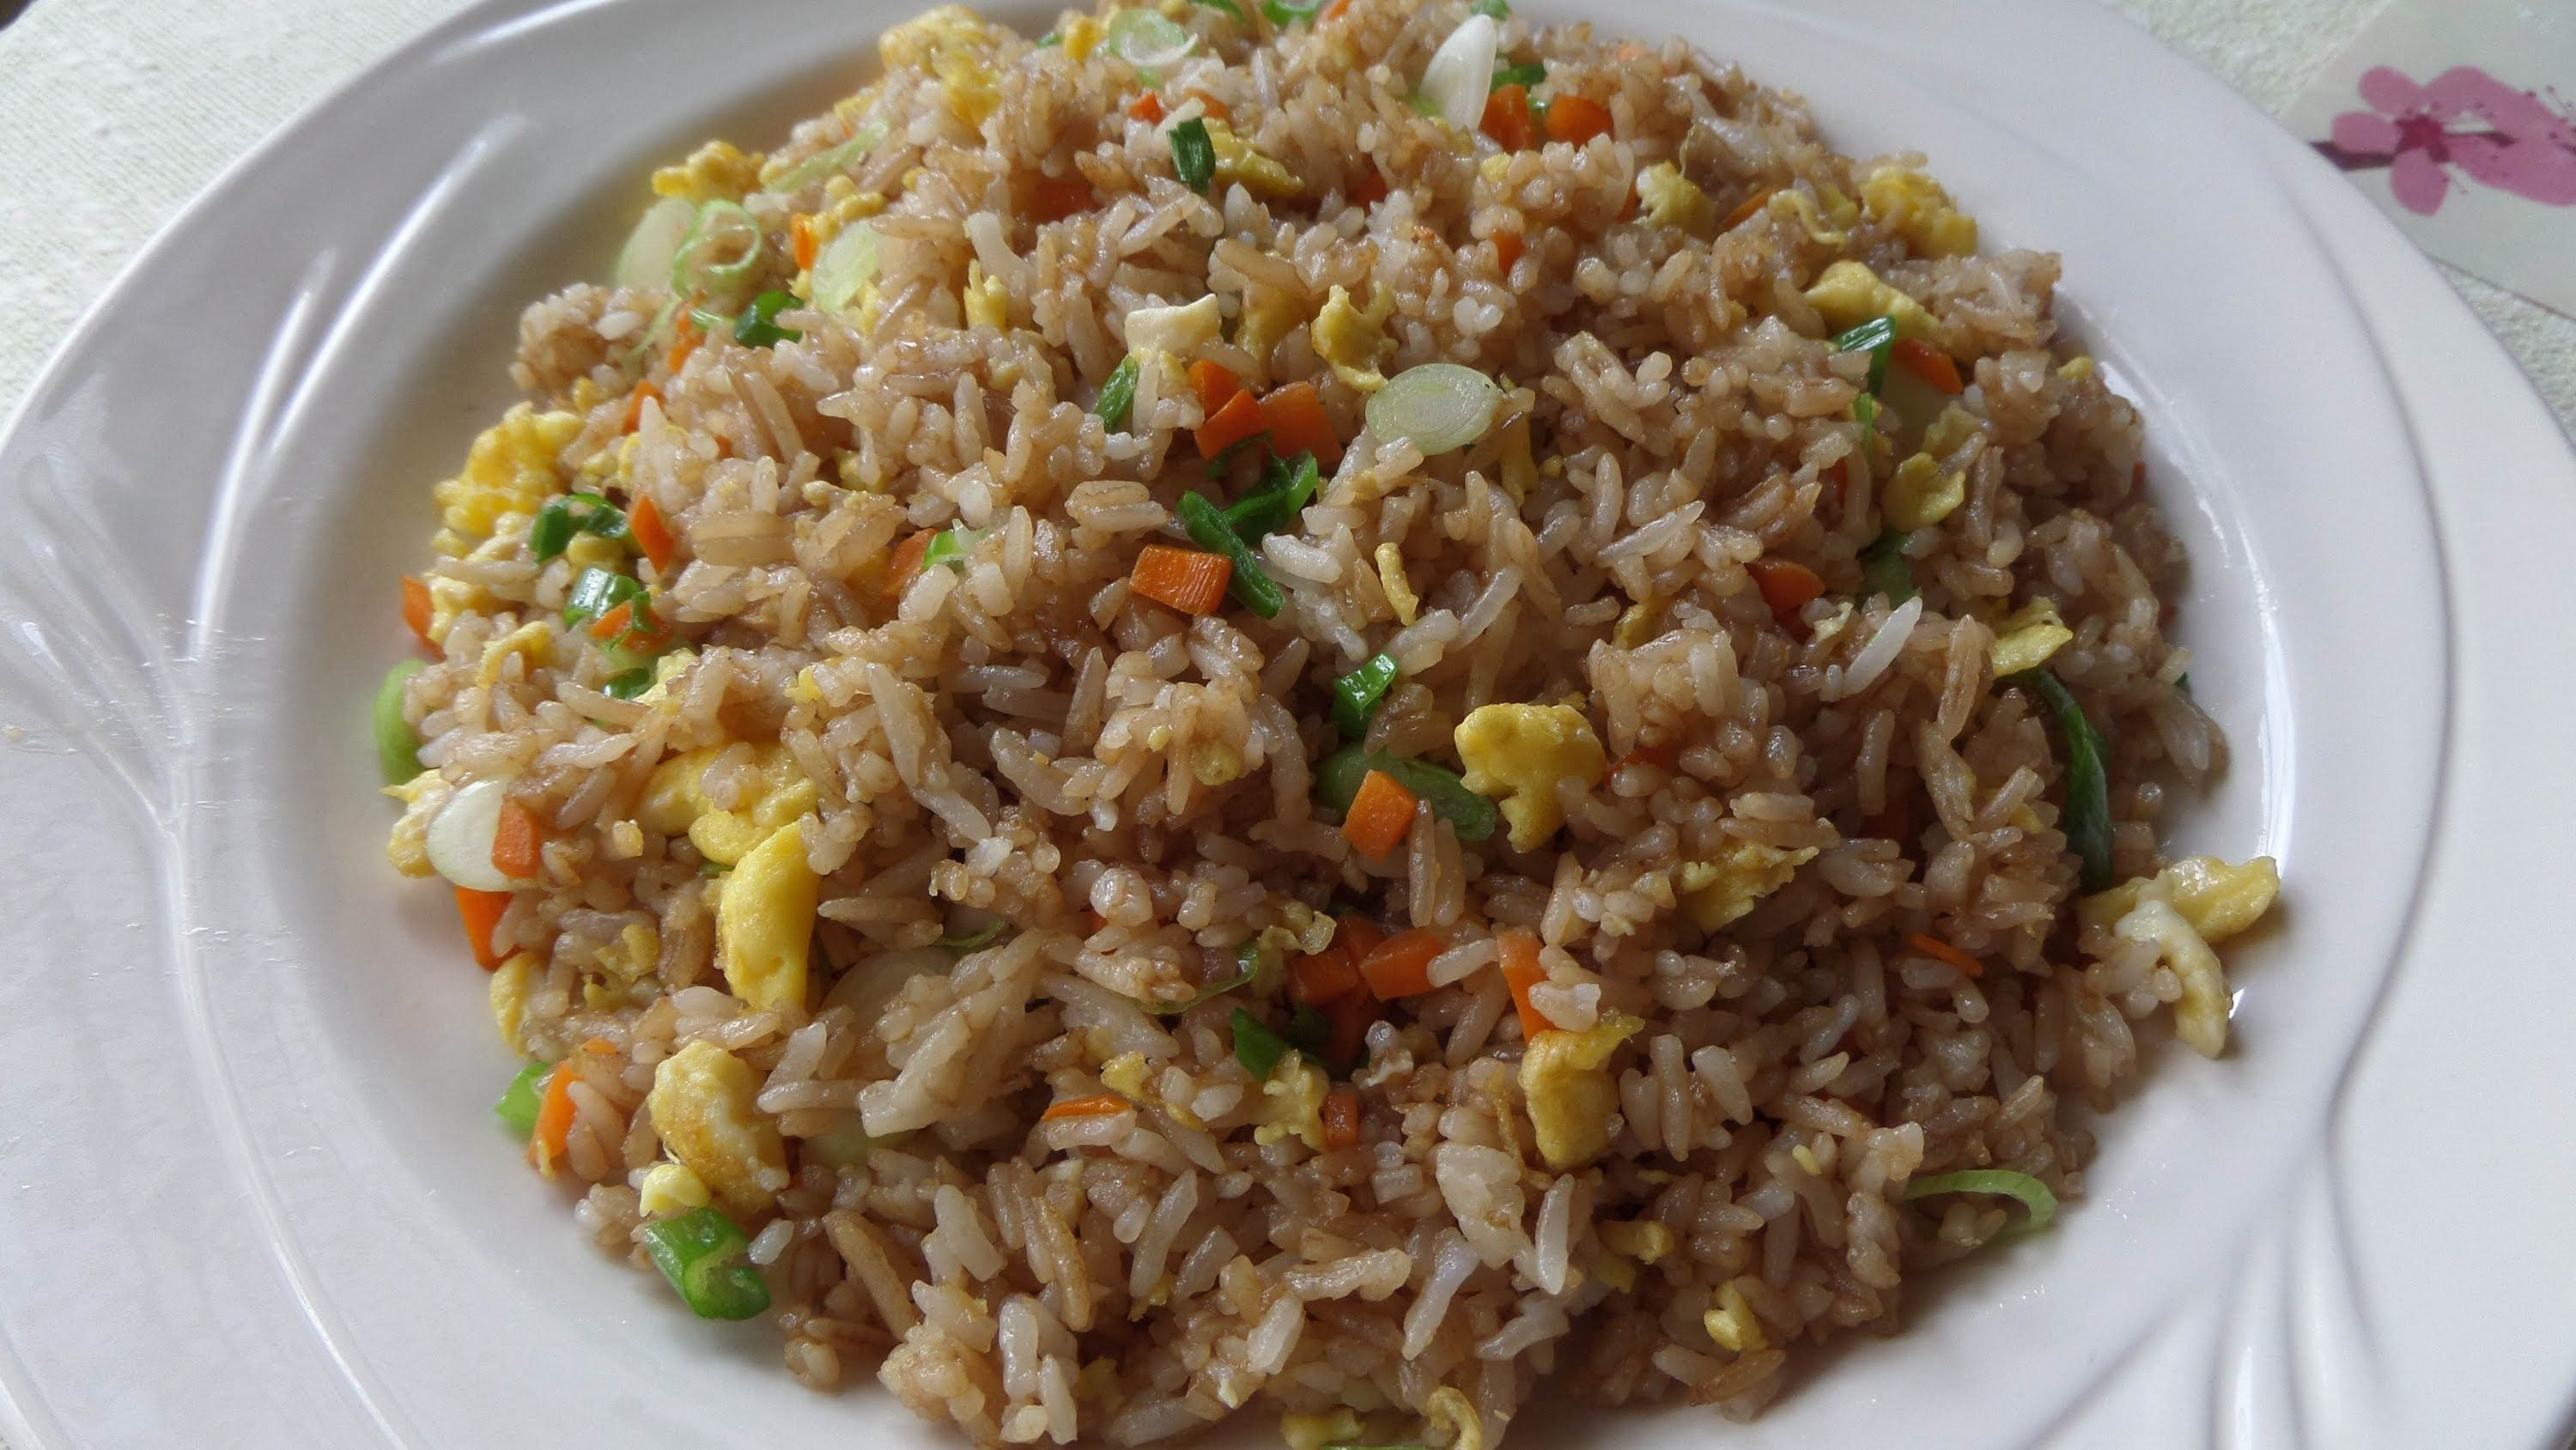 How to make fried rice with soy sauce chow rice how to make fried rice with soy sauce chow rice youtube side dishes pinterest soy sauce rice and sauces ccuart Image collections